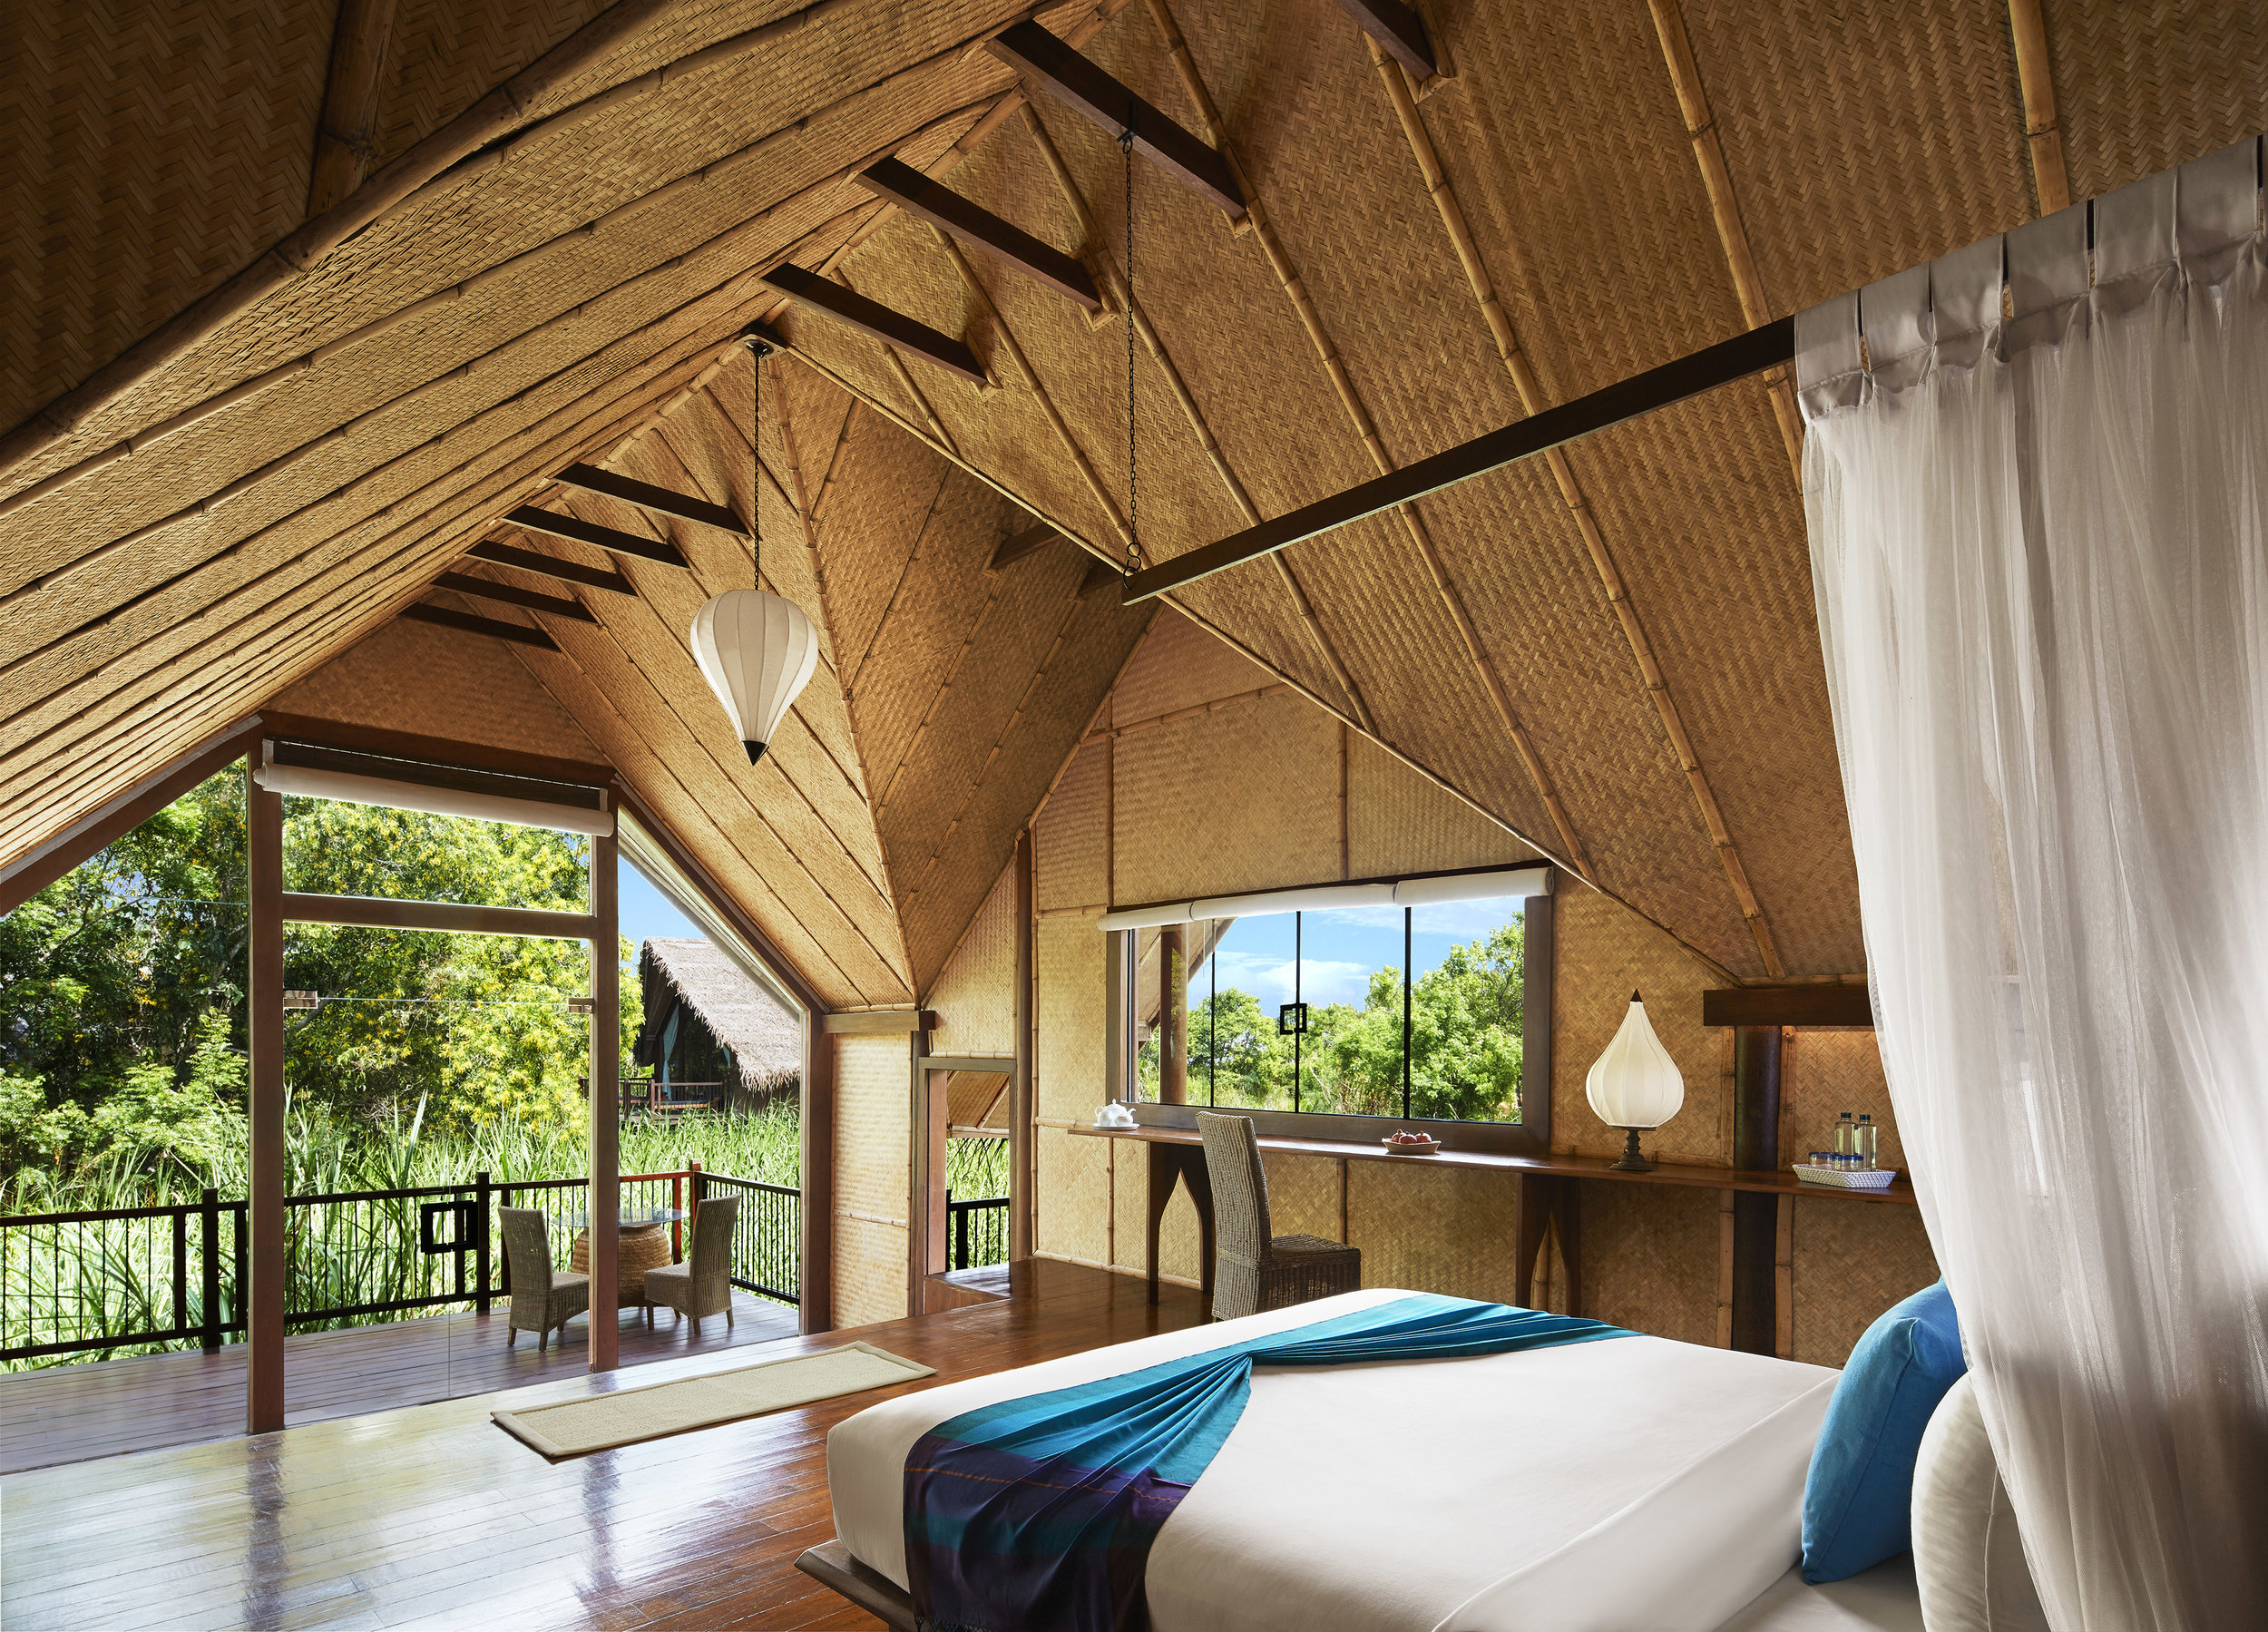 invite-to-paradise-sri-lanka-specialists-experts-travel-agent-tour-operator-jetwing-viluyana-hotel-cultural-triangle-dwelling-bedroom-4.jpg